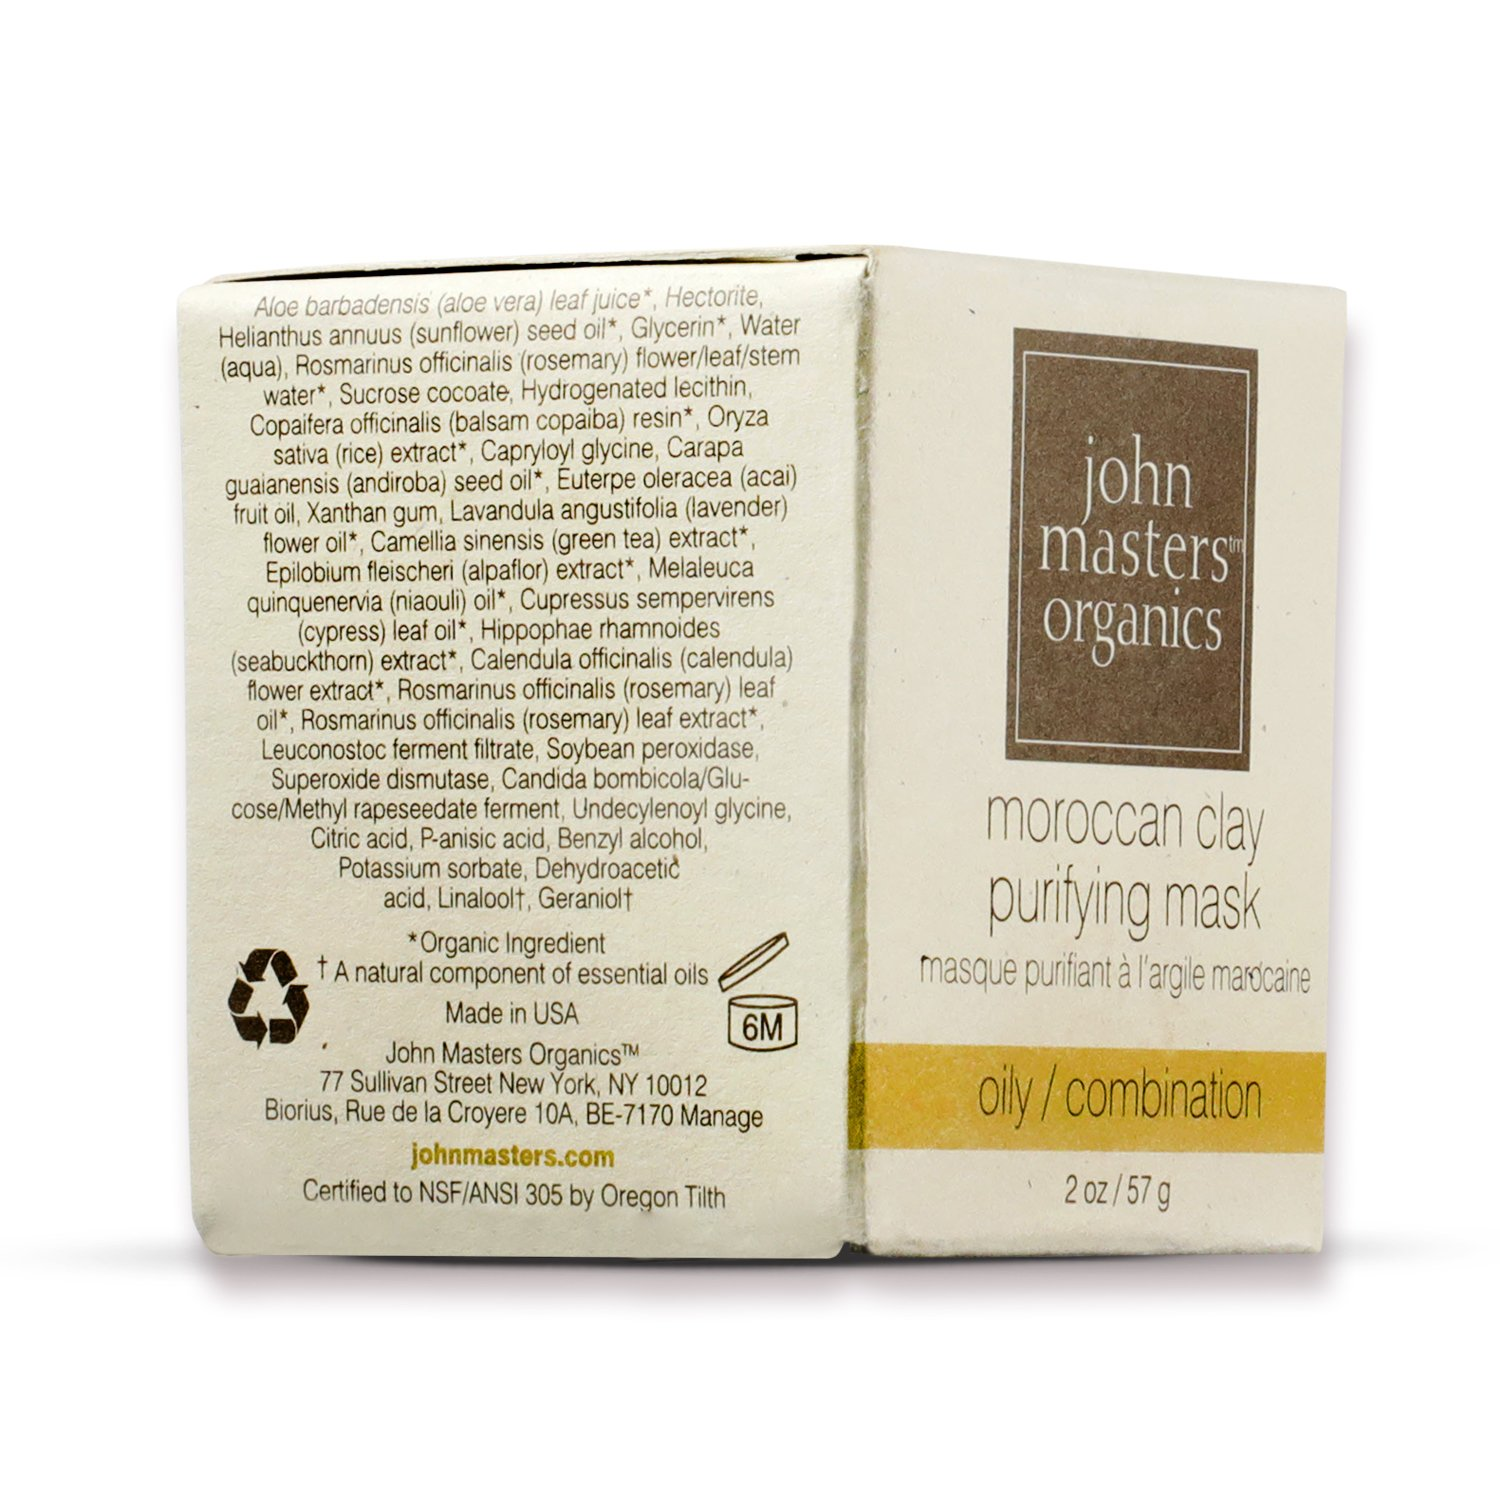 John Masters Organics – Moroccan Clay Purifying Mask – Natural Face Cleanser to Remove Oil Dirt without Over Drying for Oily Combination Skin – 2 oz